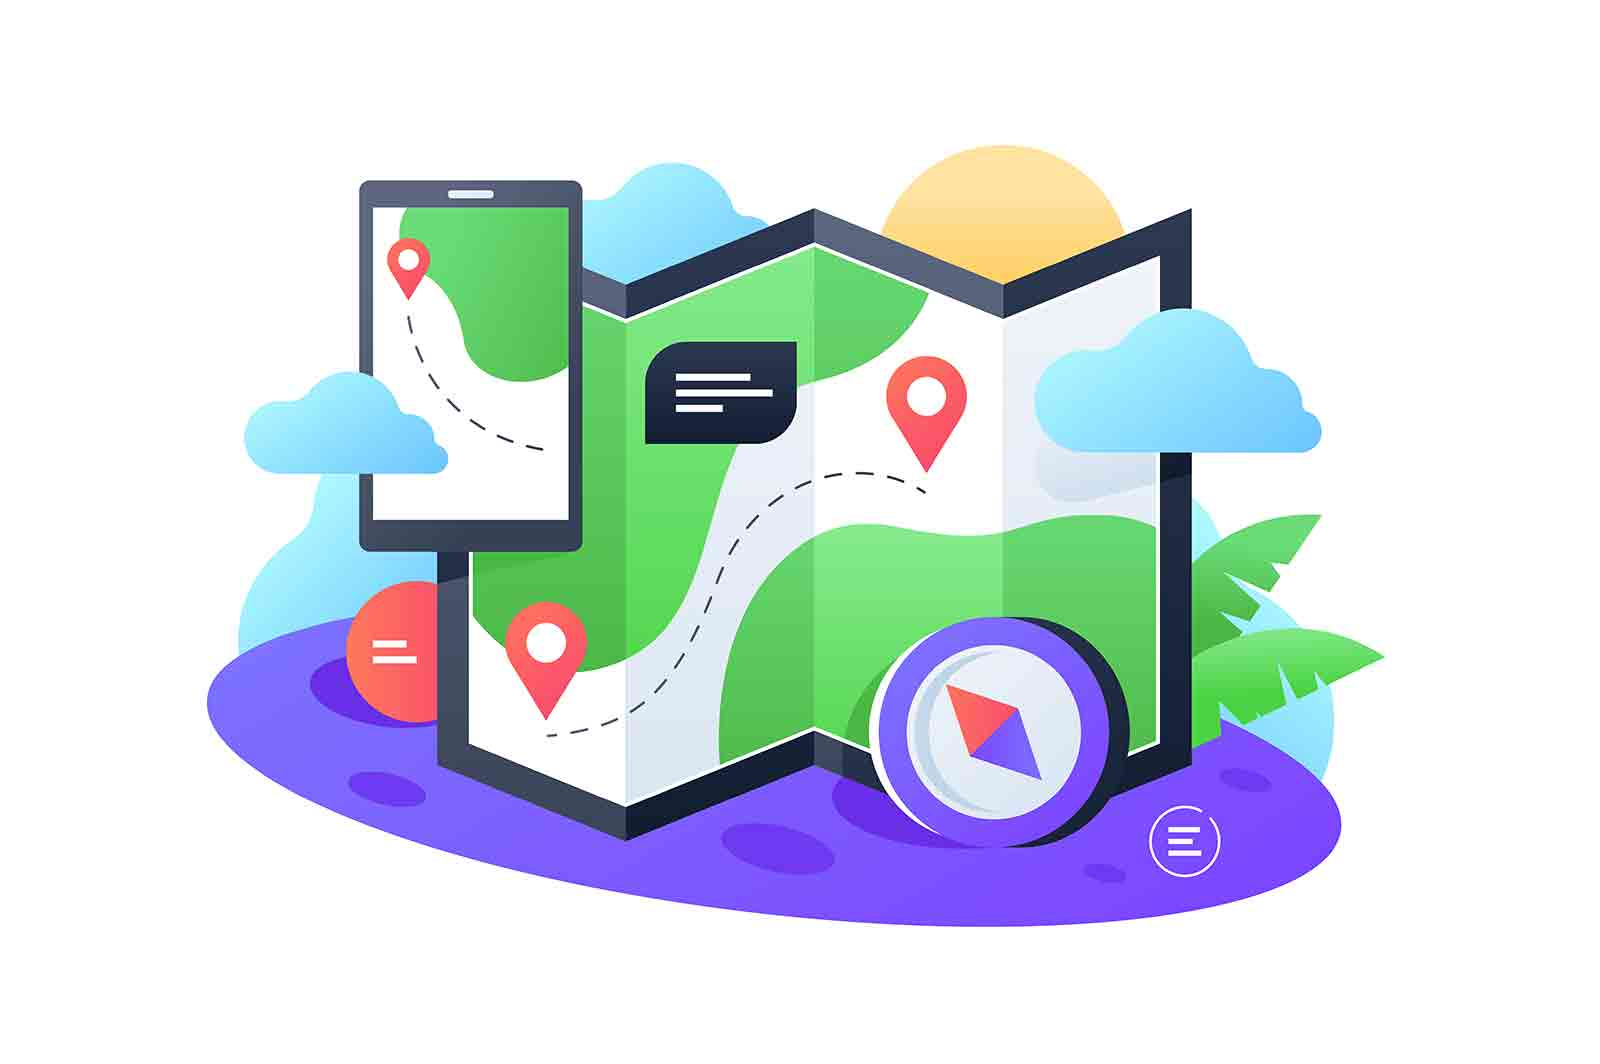 Navigation map and telephone vector illustration. Pave way, get directions flat style. App for tourist. Travel and guidebook concept. Isolated on white background